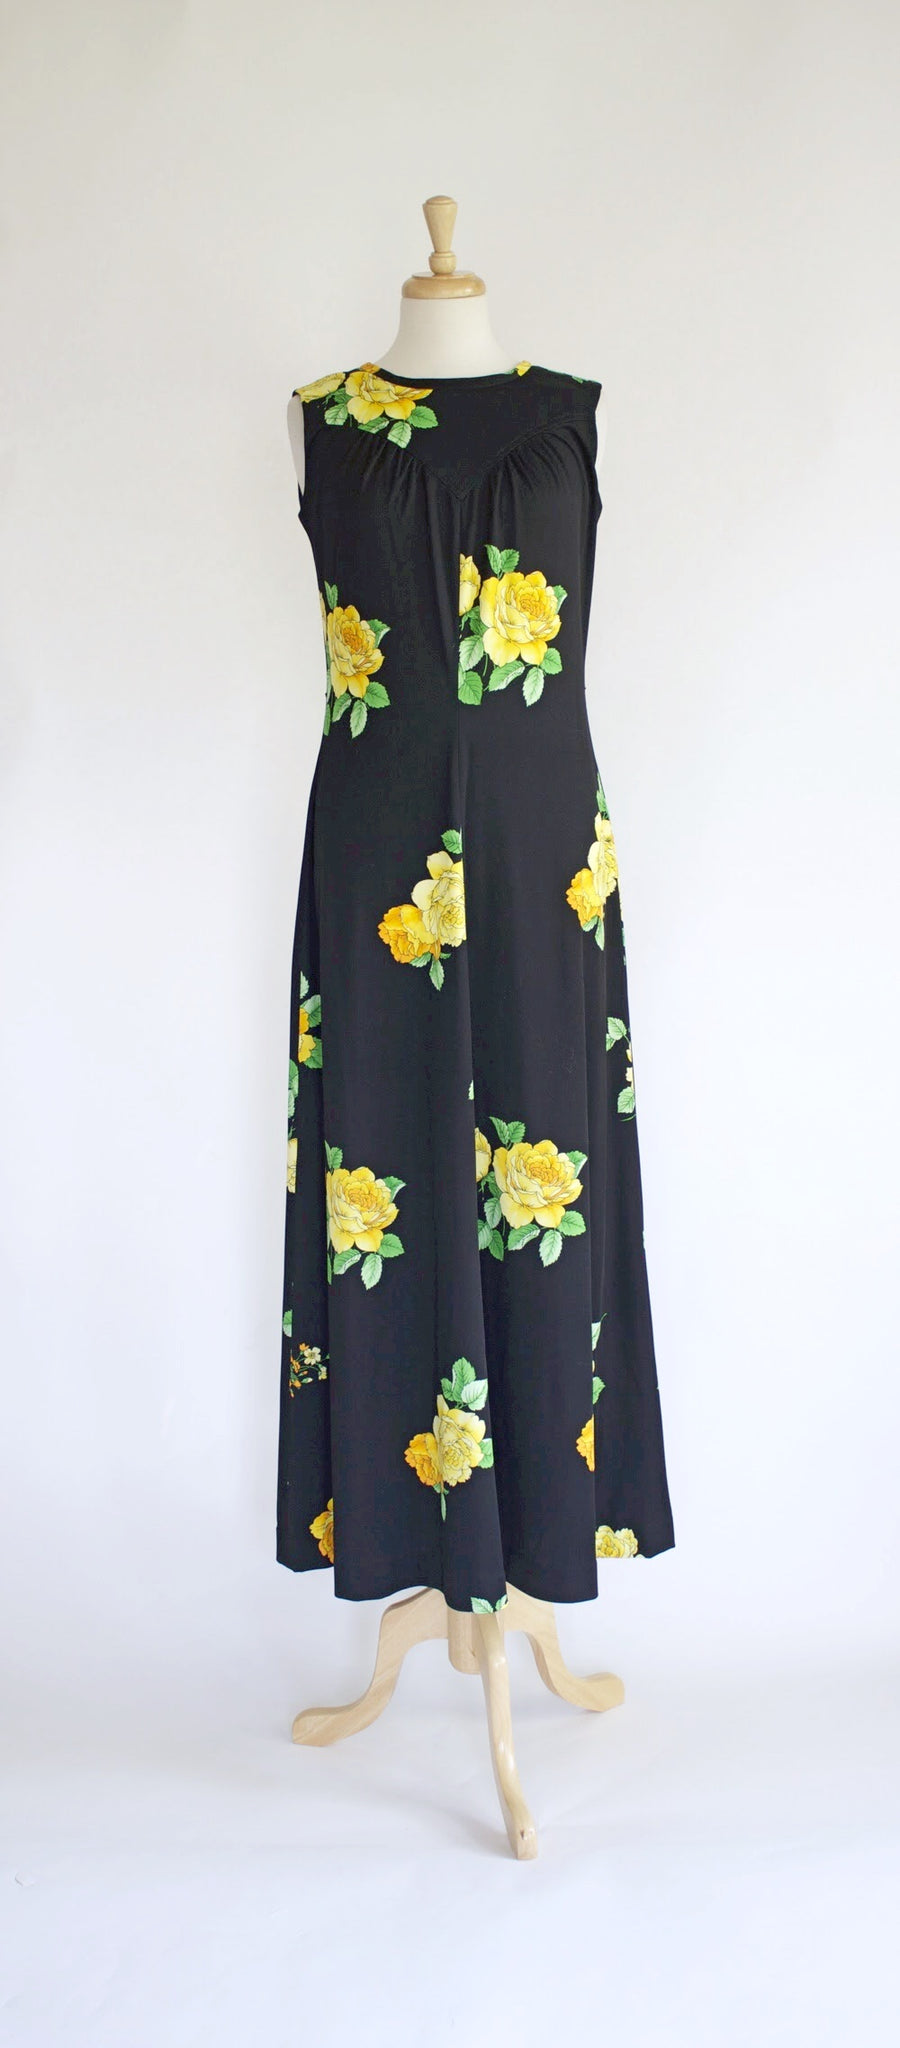 SOLD // 60s Polyester Maxi Dress / 60s Hostess Dress / 60s Dress and Jacket Set